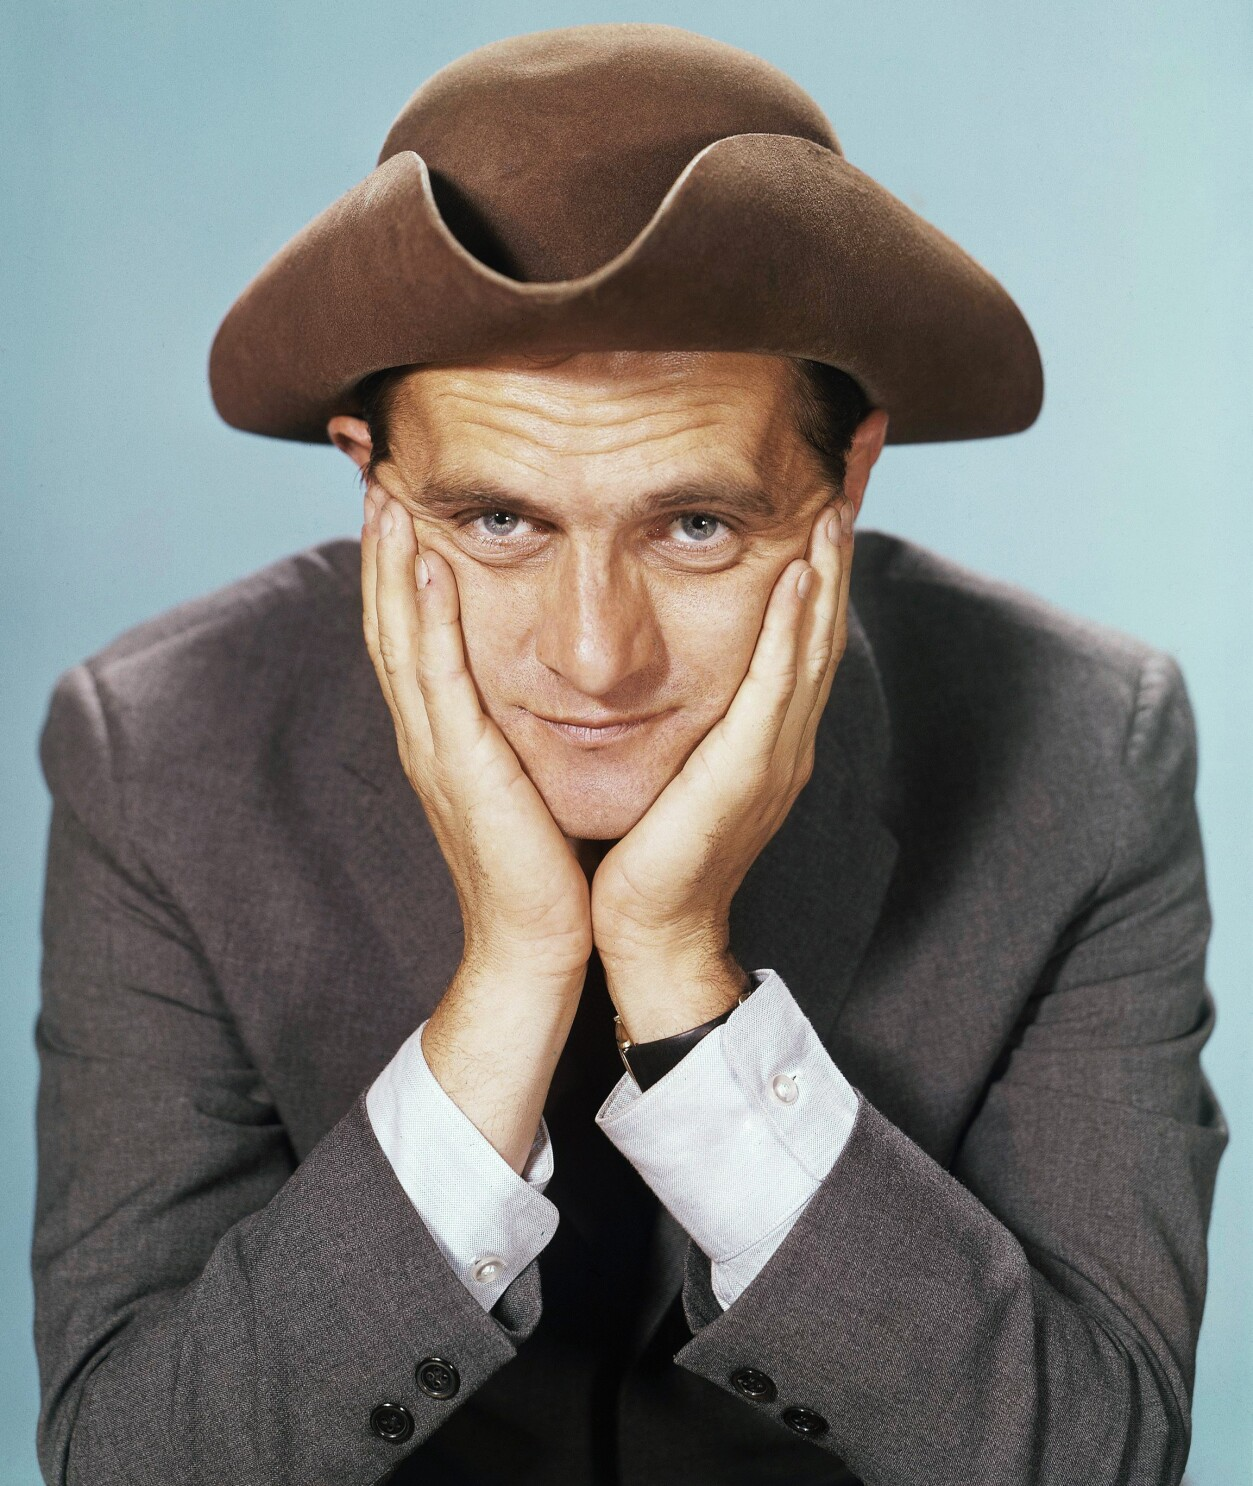 Bob Newhart Toasts His Chart Topping 1960 Debut Album It Was Back To Accounting If Comedy Didn T Work Out The San Diego Union Tribune